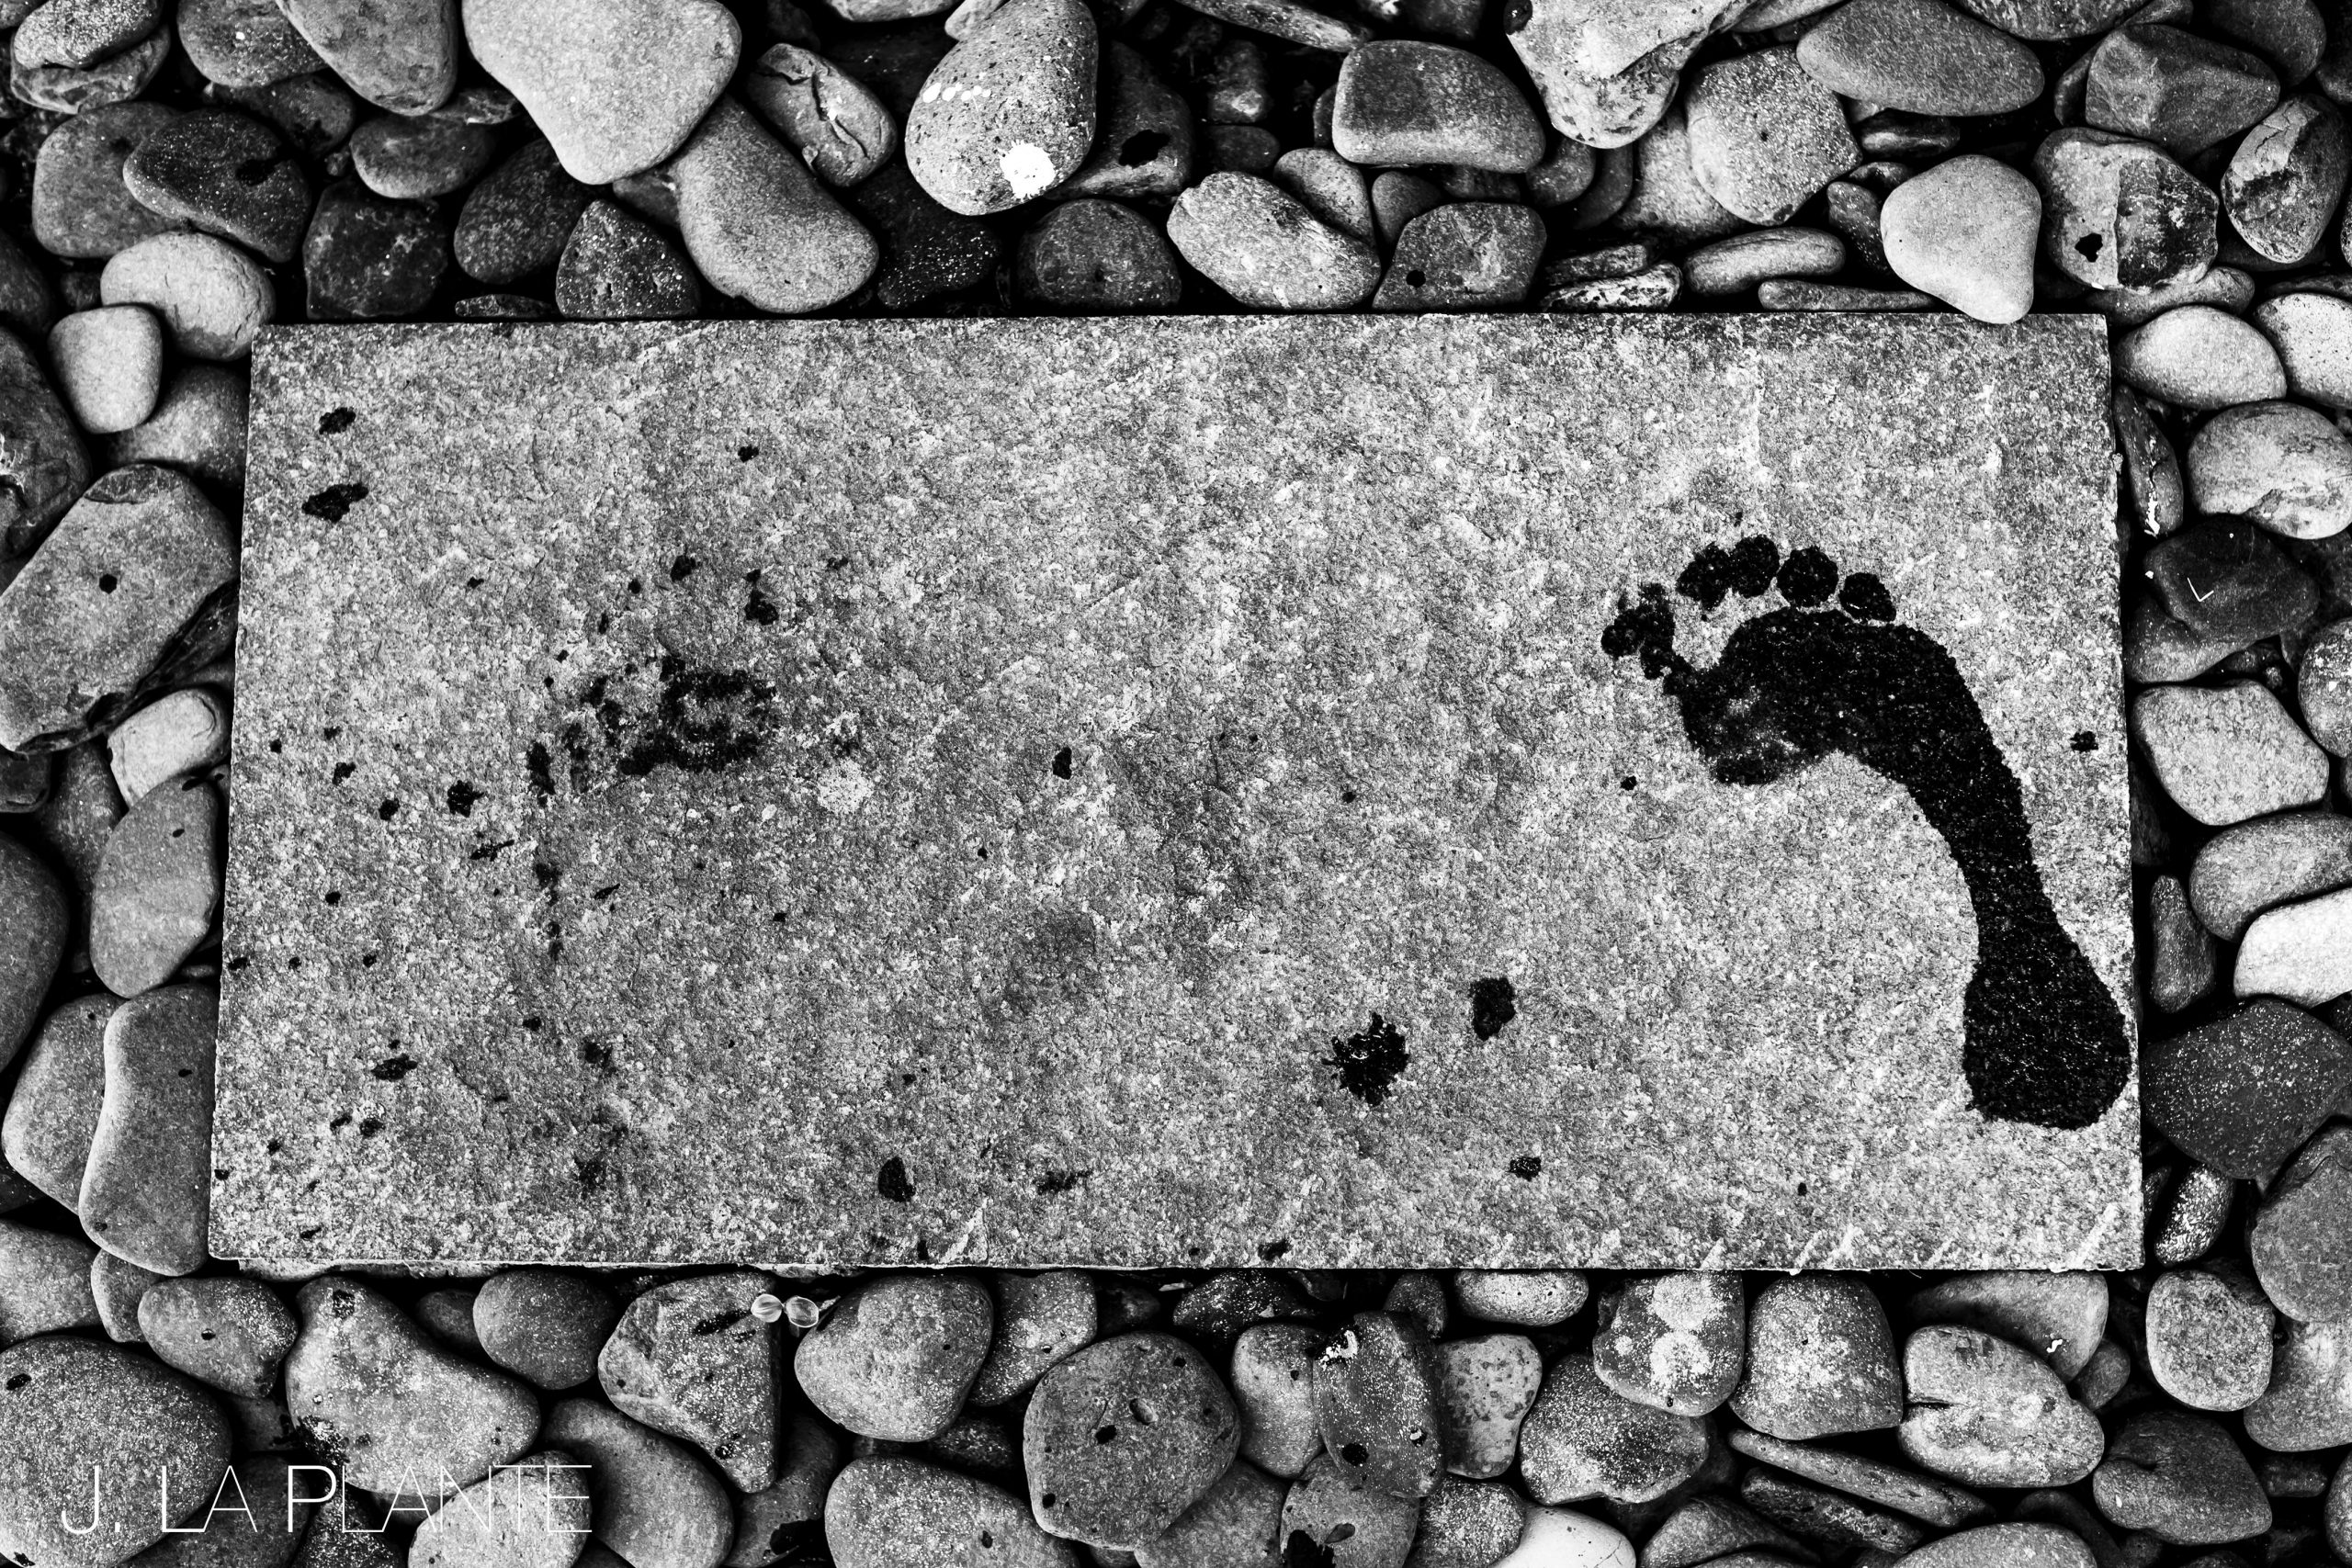 Wet footprint left on a stone slab